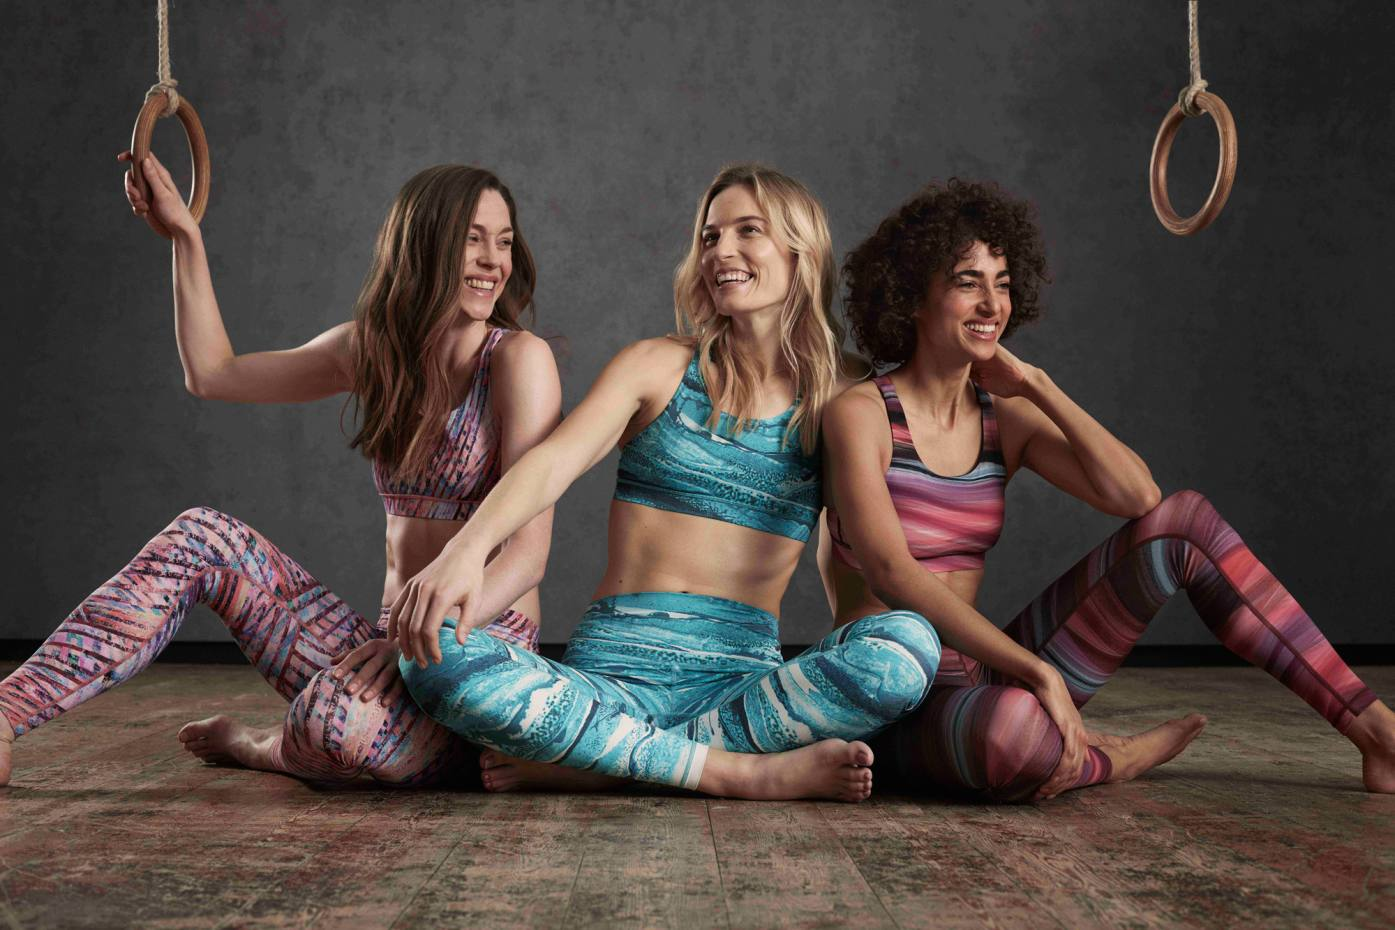 """Three designs from the Lululemon x CSM """"Art of Motion"""" collection: (from left) Kascade, Quartzite and Tulle"""